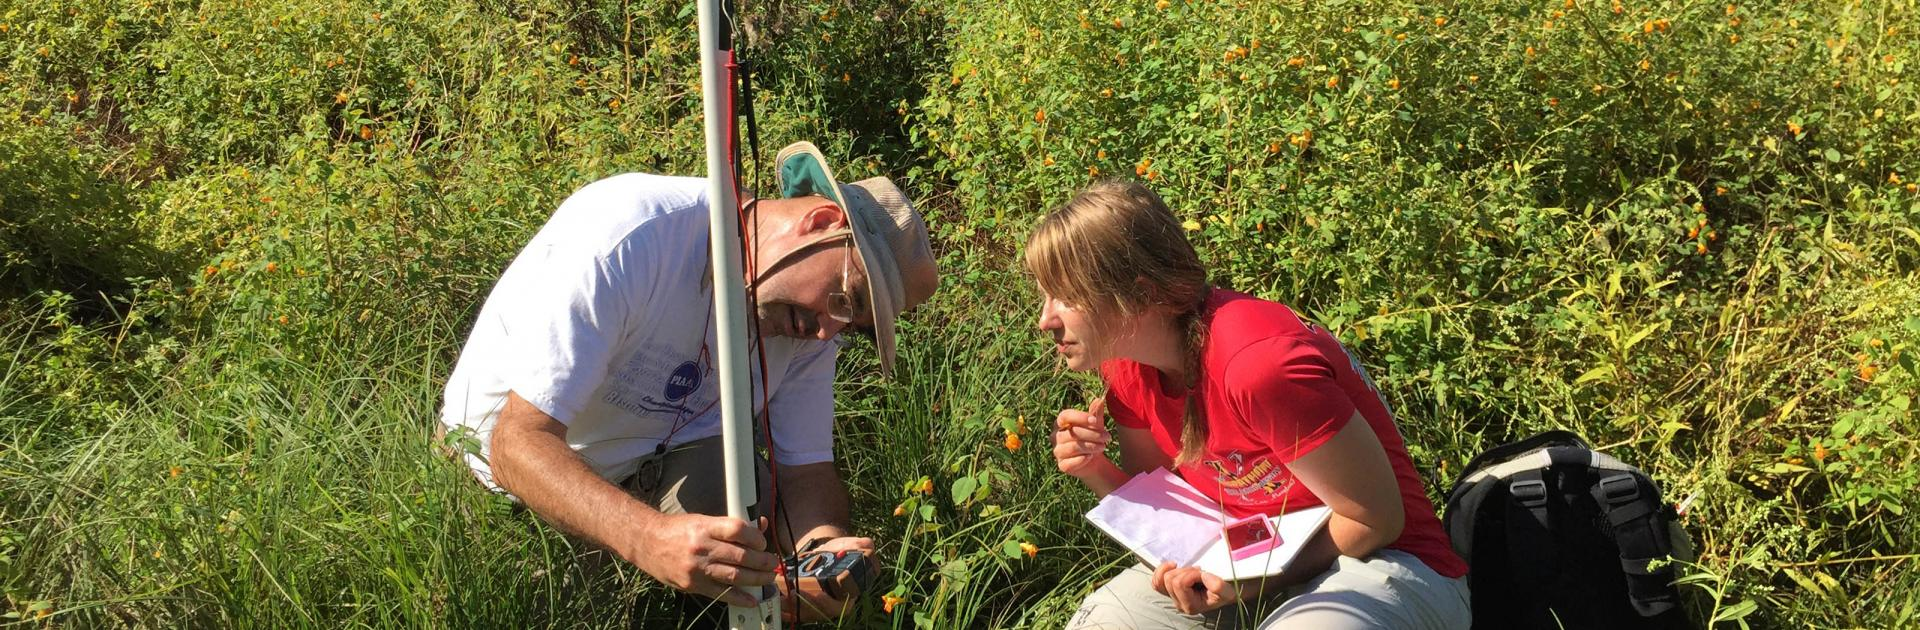 Appalachian Laboratory Professor Keith Eshleman and graduate student Stephanie Siemek observe groundwater.